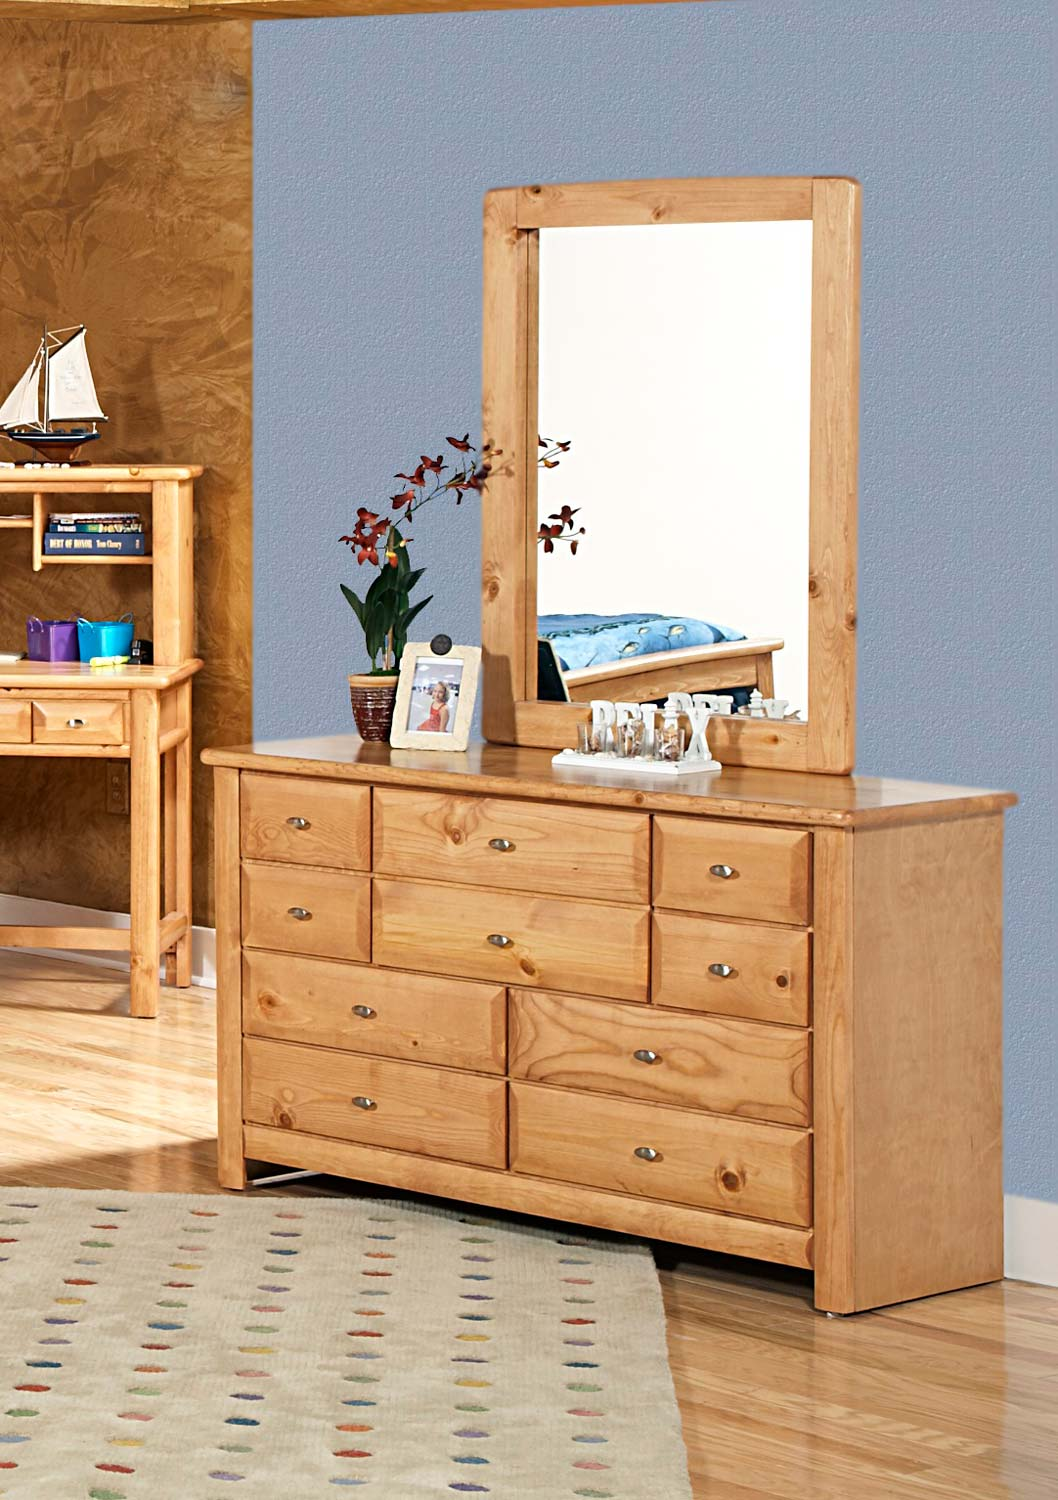 Chelsea home 3534535 4536 c 9 drawer dresser with mirror for Furniture 63366